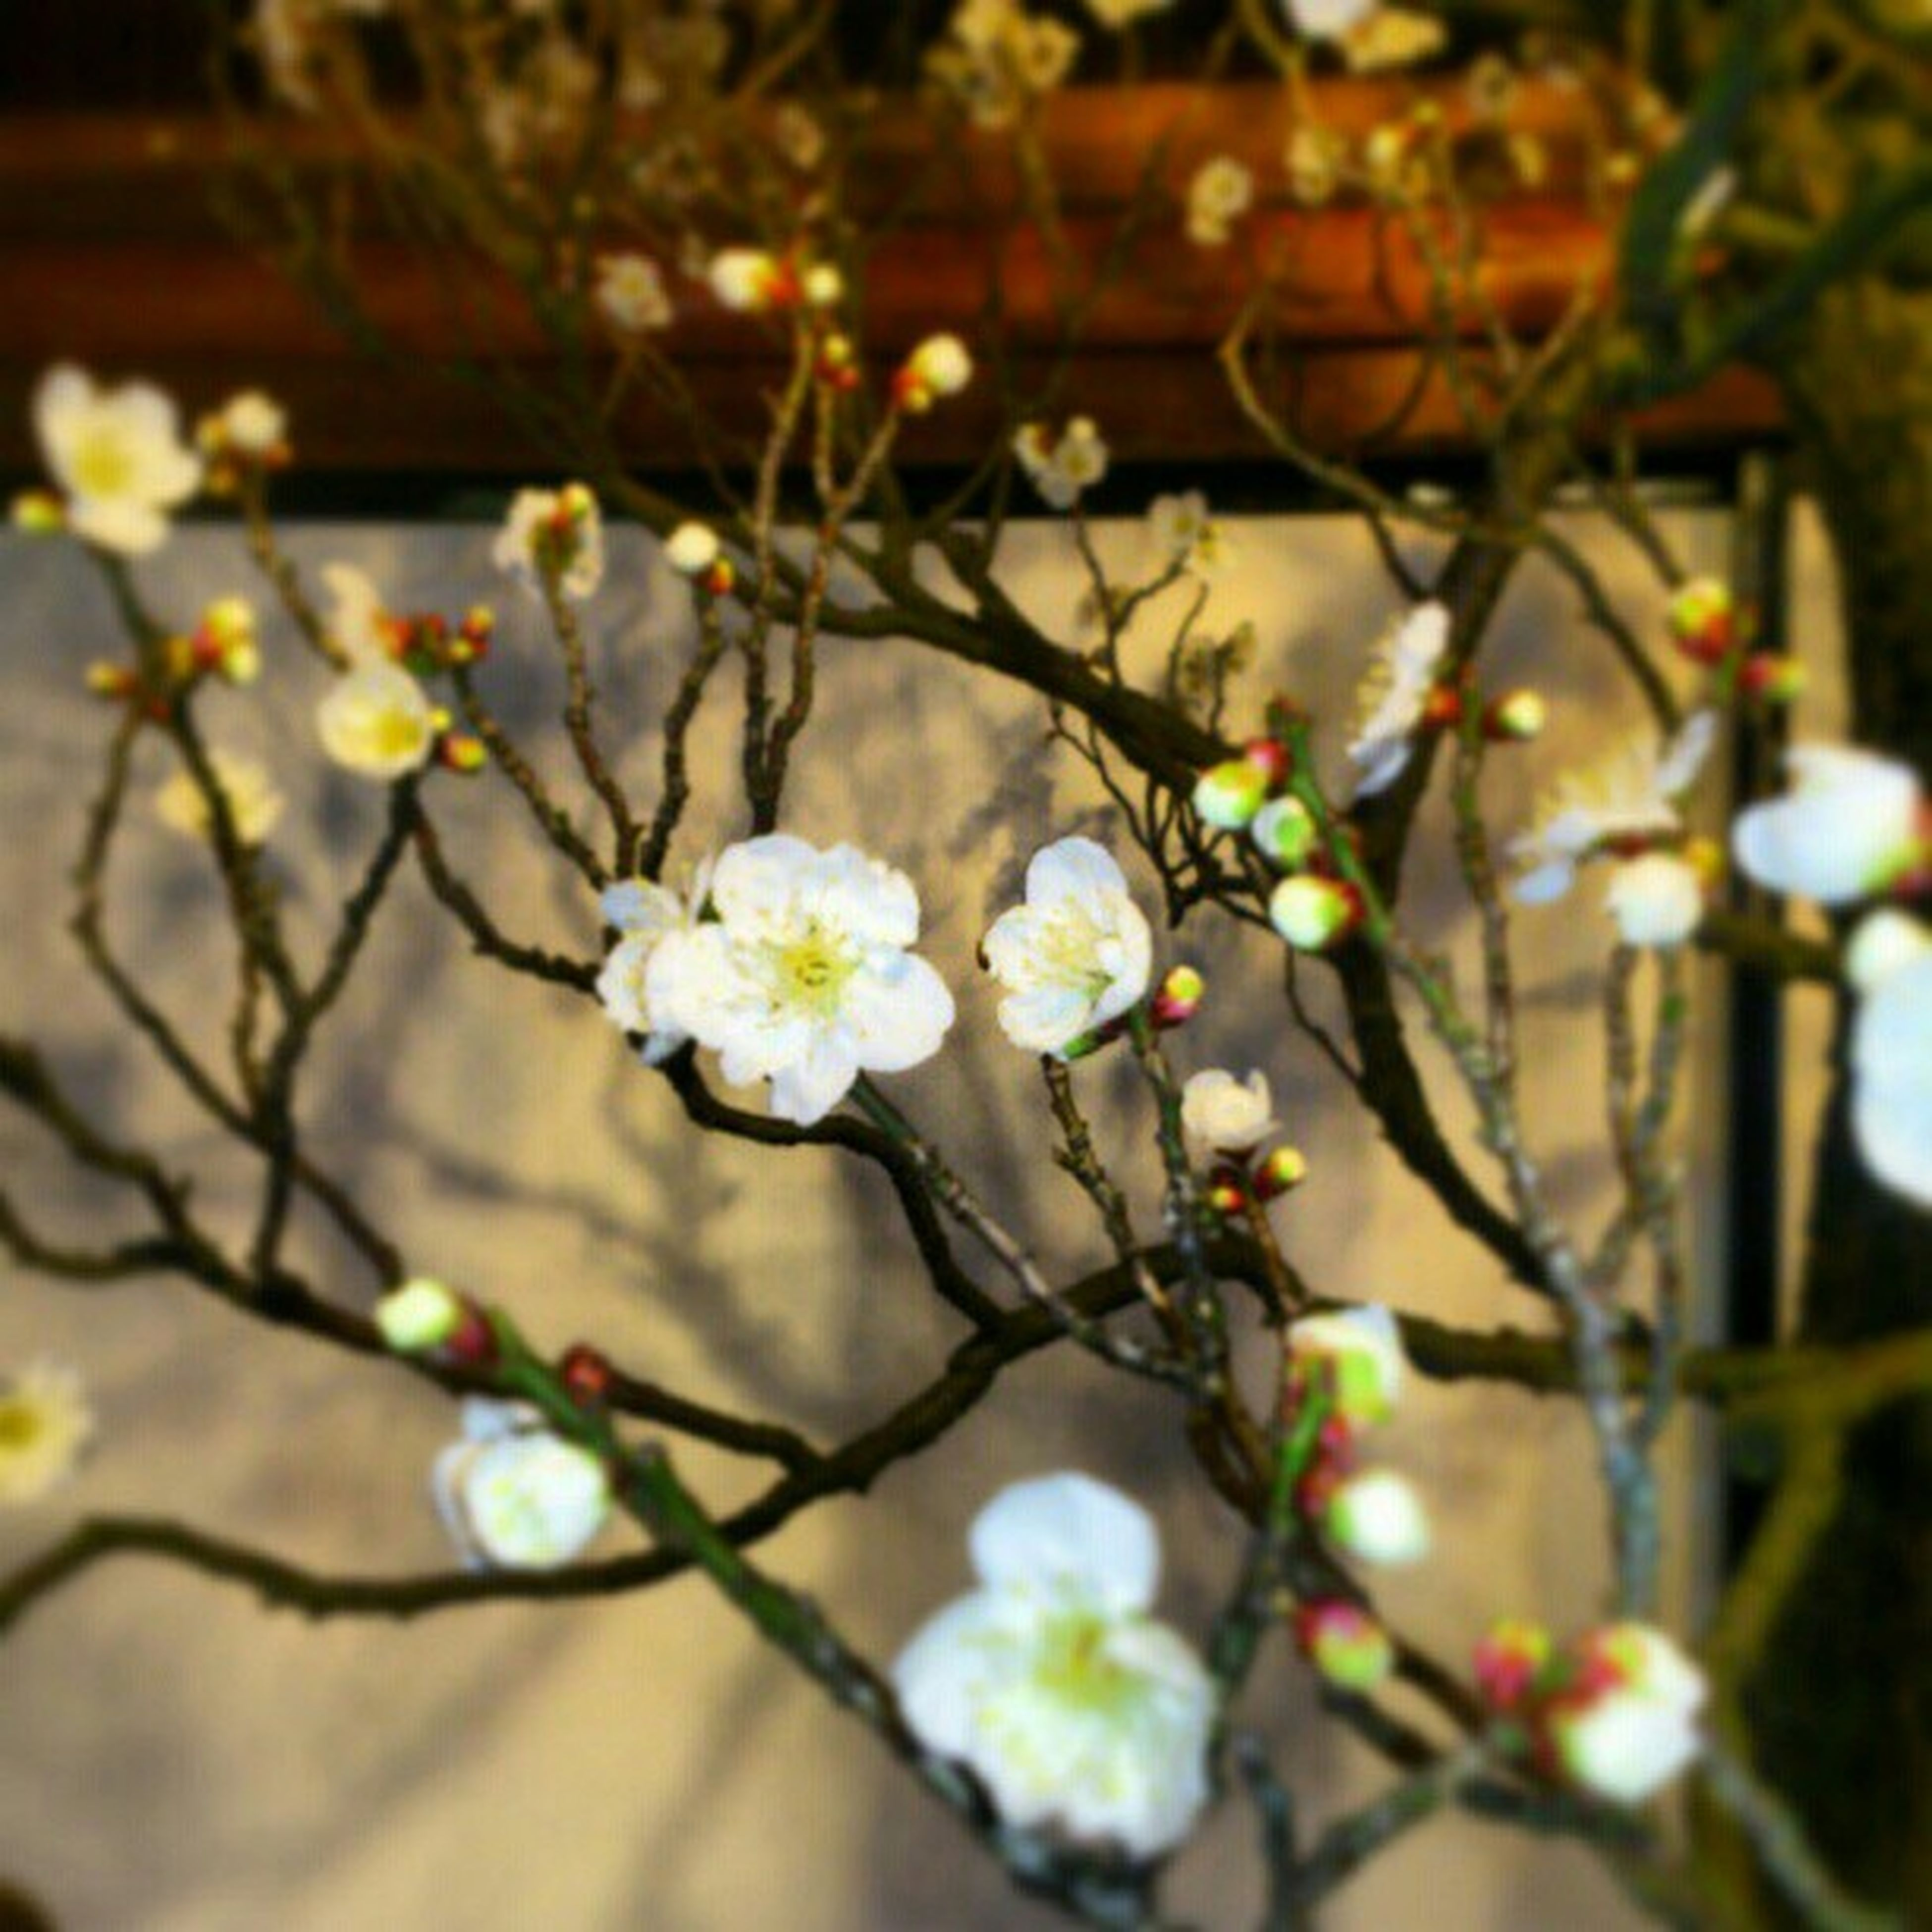 flower, freshness, growth, fragility, petal, white color, focus on foreground, beauty in nature, nature, close-up, blooming, plant, selective focus, blossom, flower head, in bloom, branch, springtime, stem, botany